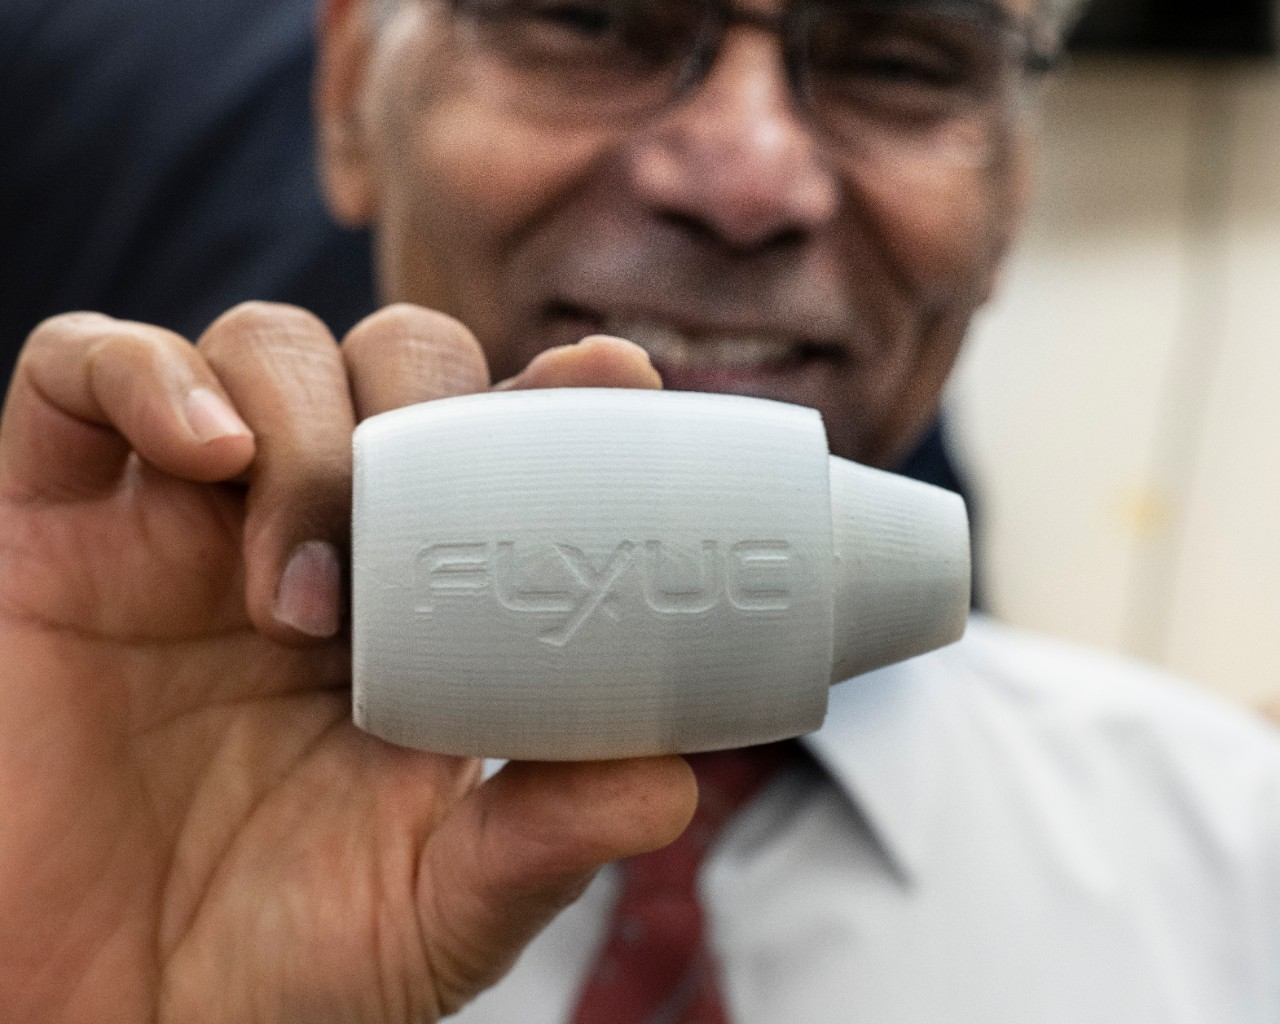 Shaaban Abdallah holds up a white 3-D printed model to his face. The model is an aircraft  fuselage featuring the logo Fly UC.